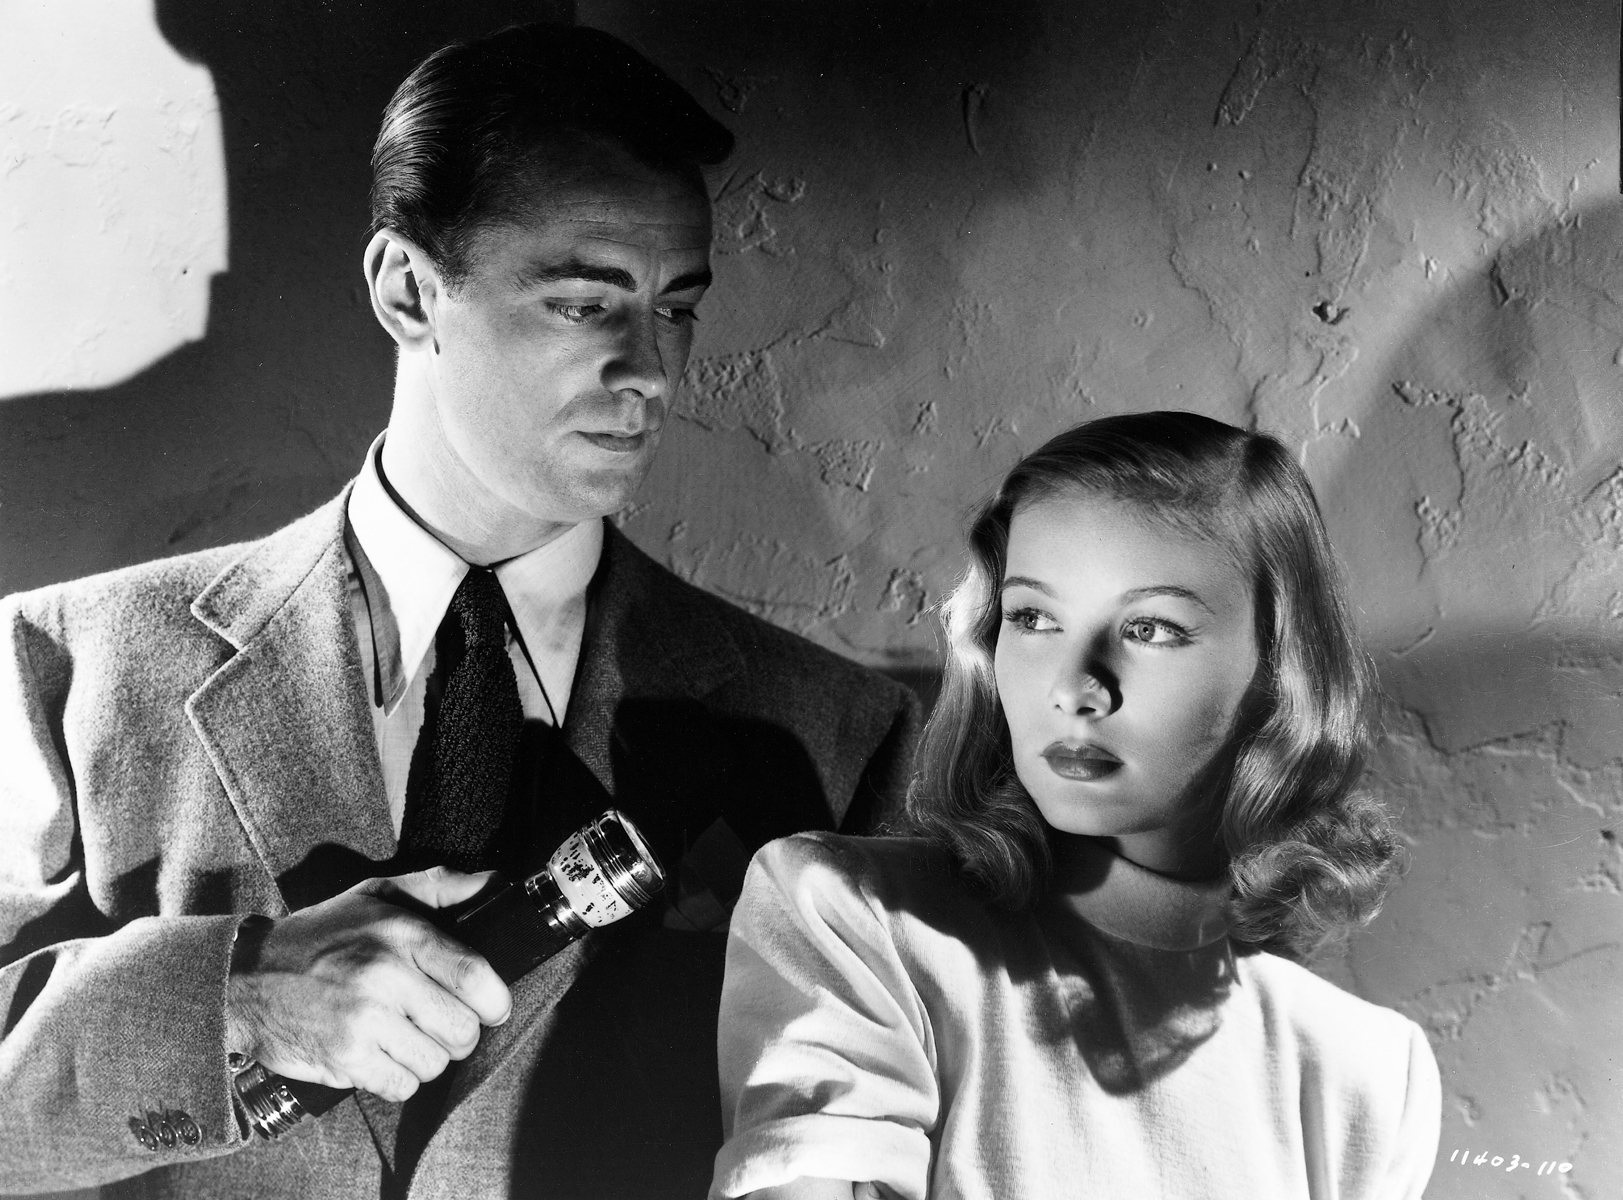 Alan Ladd and Veronica Lake in The Blue Dahlia (1946)